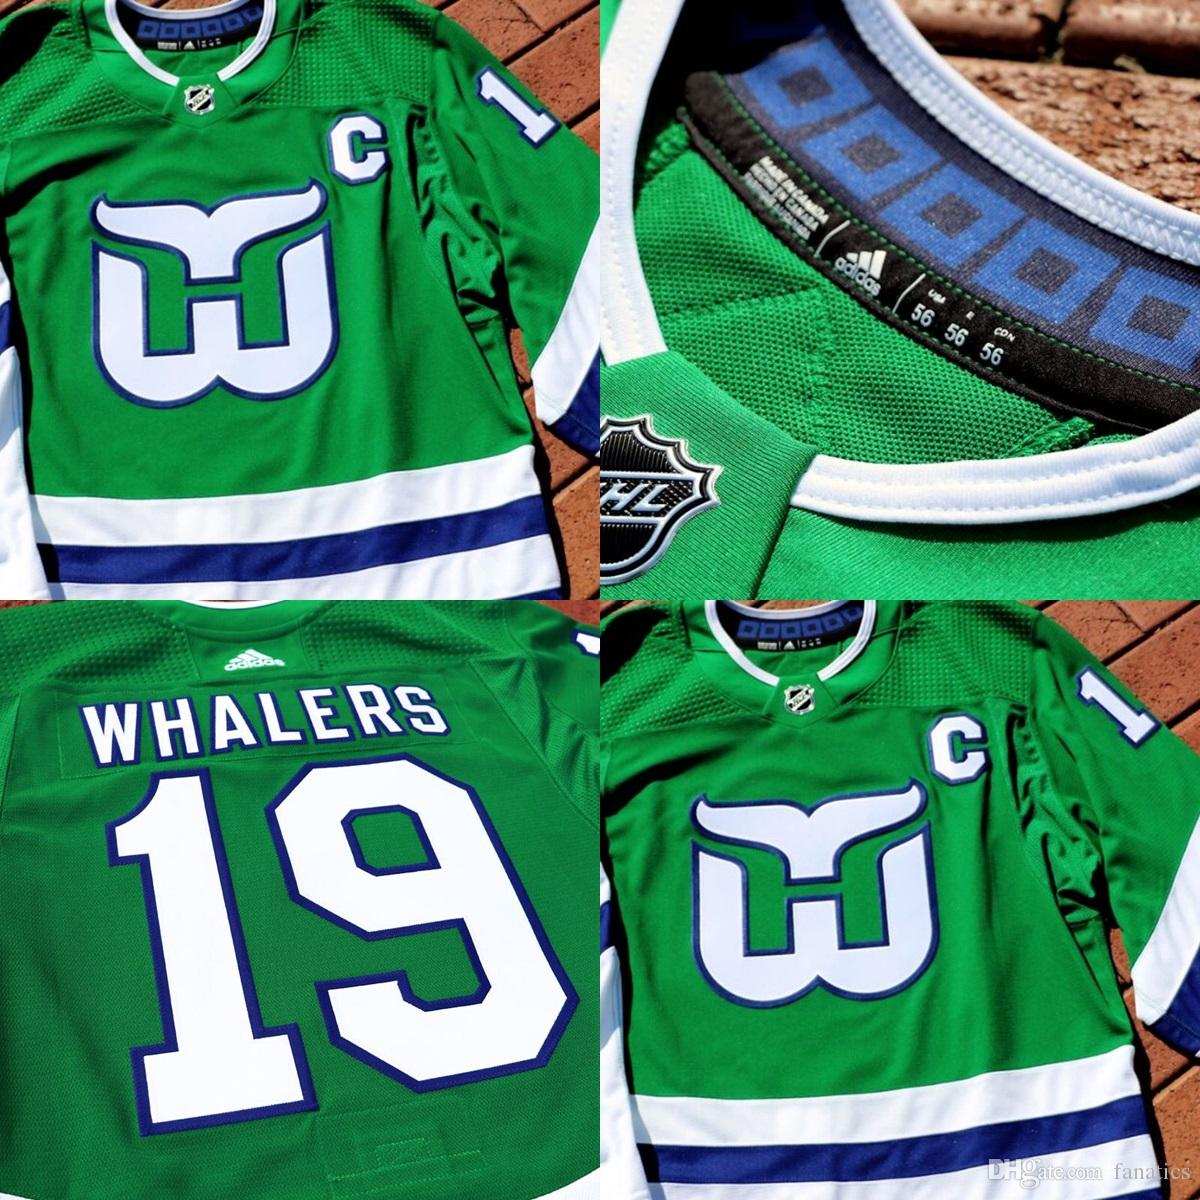 hartford whalers jersey adidas 0d3714